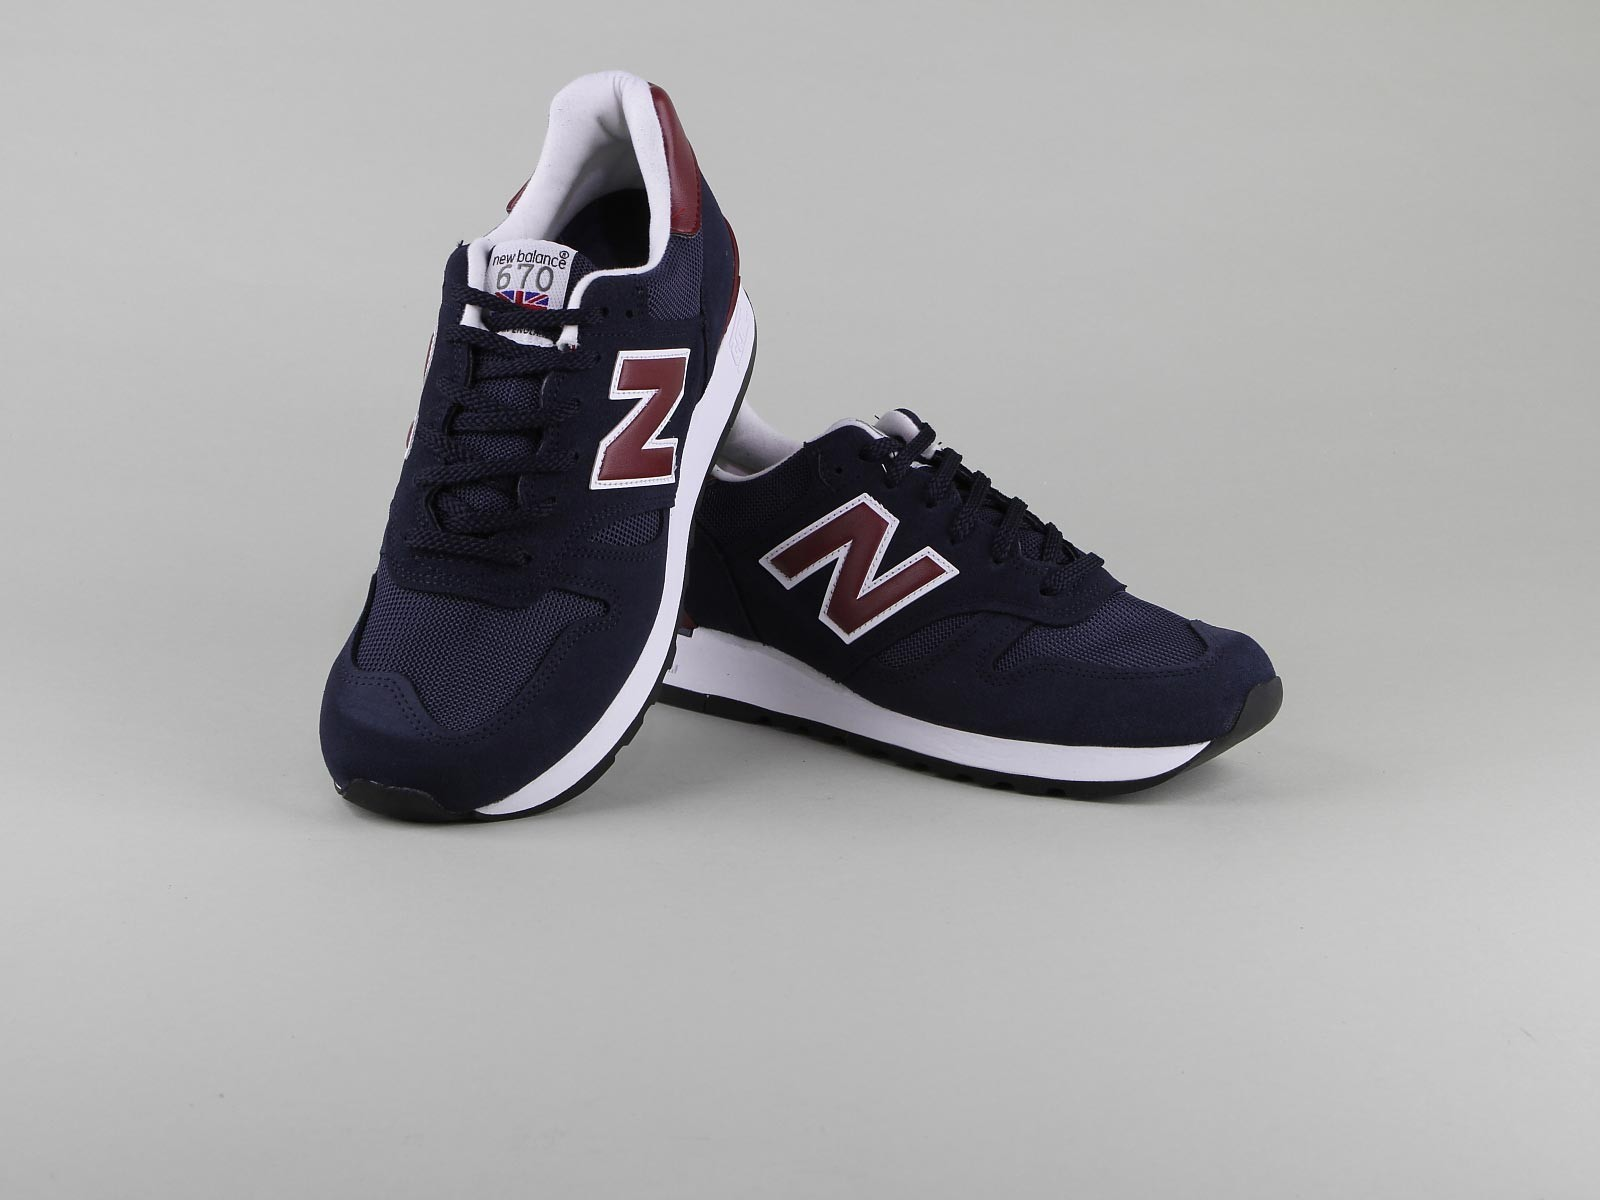 a3888a0143cd new balance bordeaux et noir